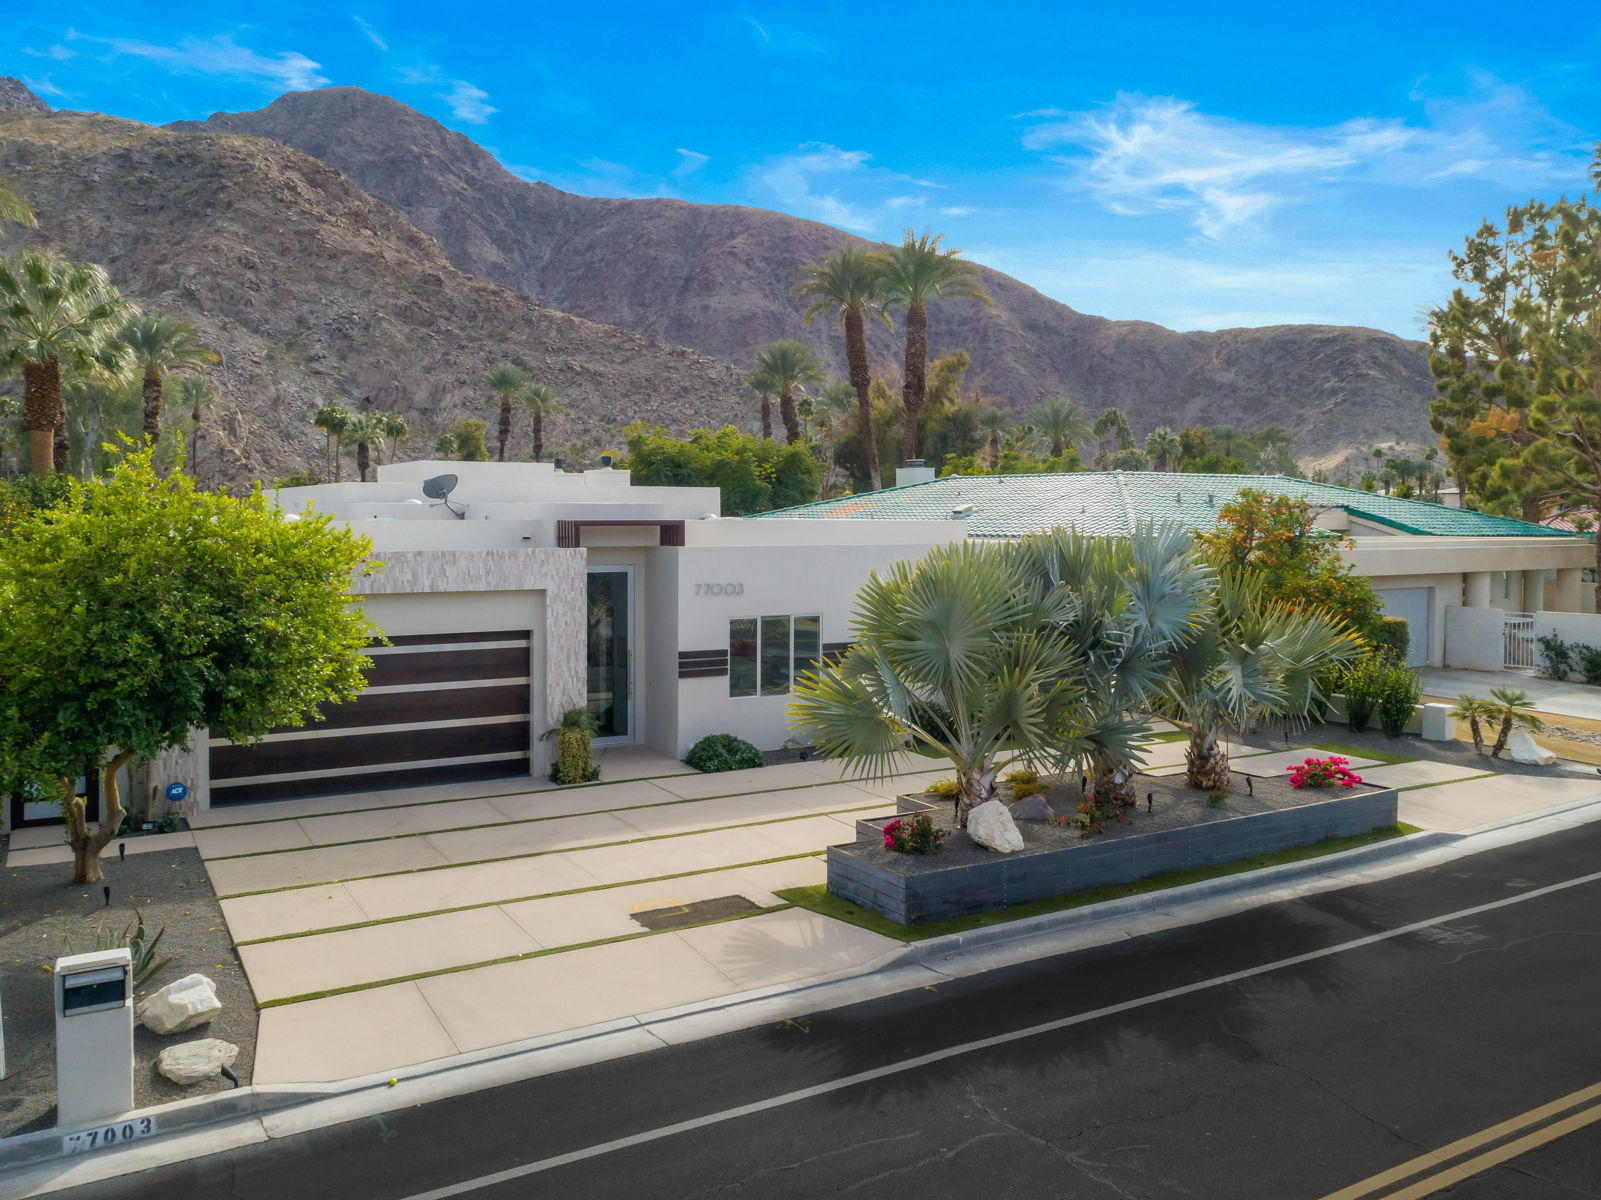 Photo of 77003 Iroquois Drive, Indian Wells, CA 92210